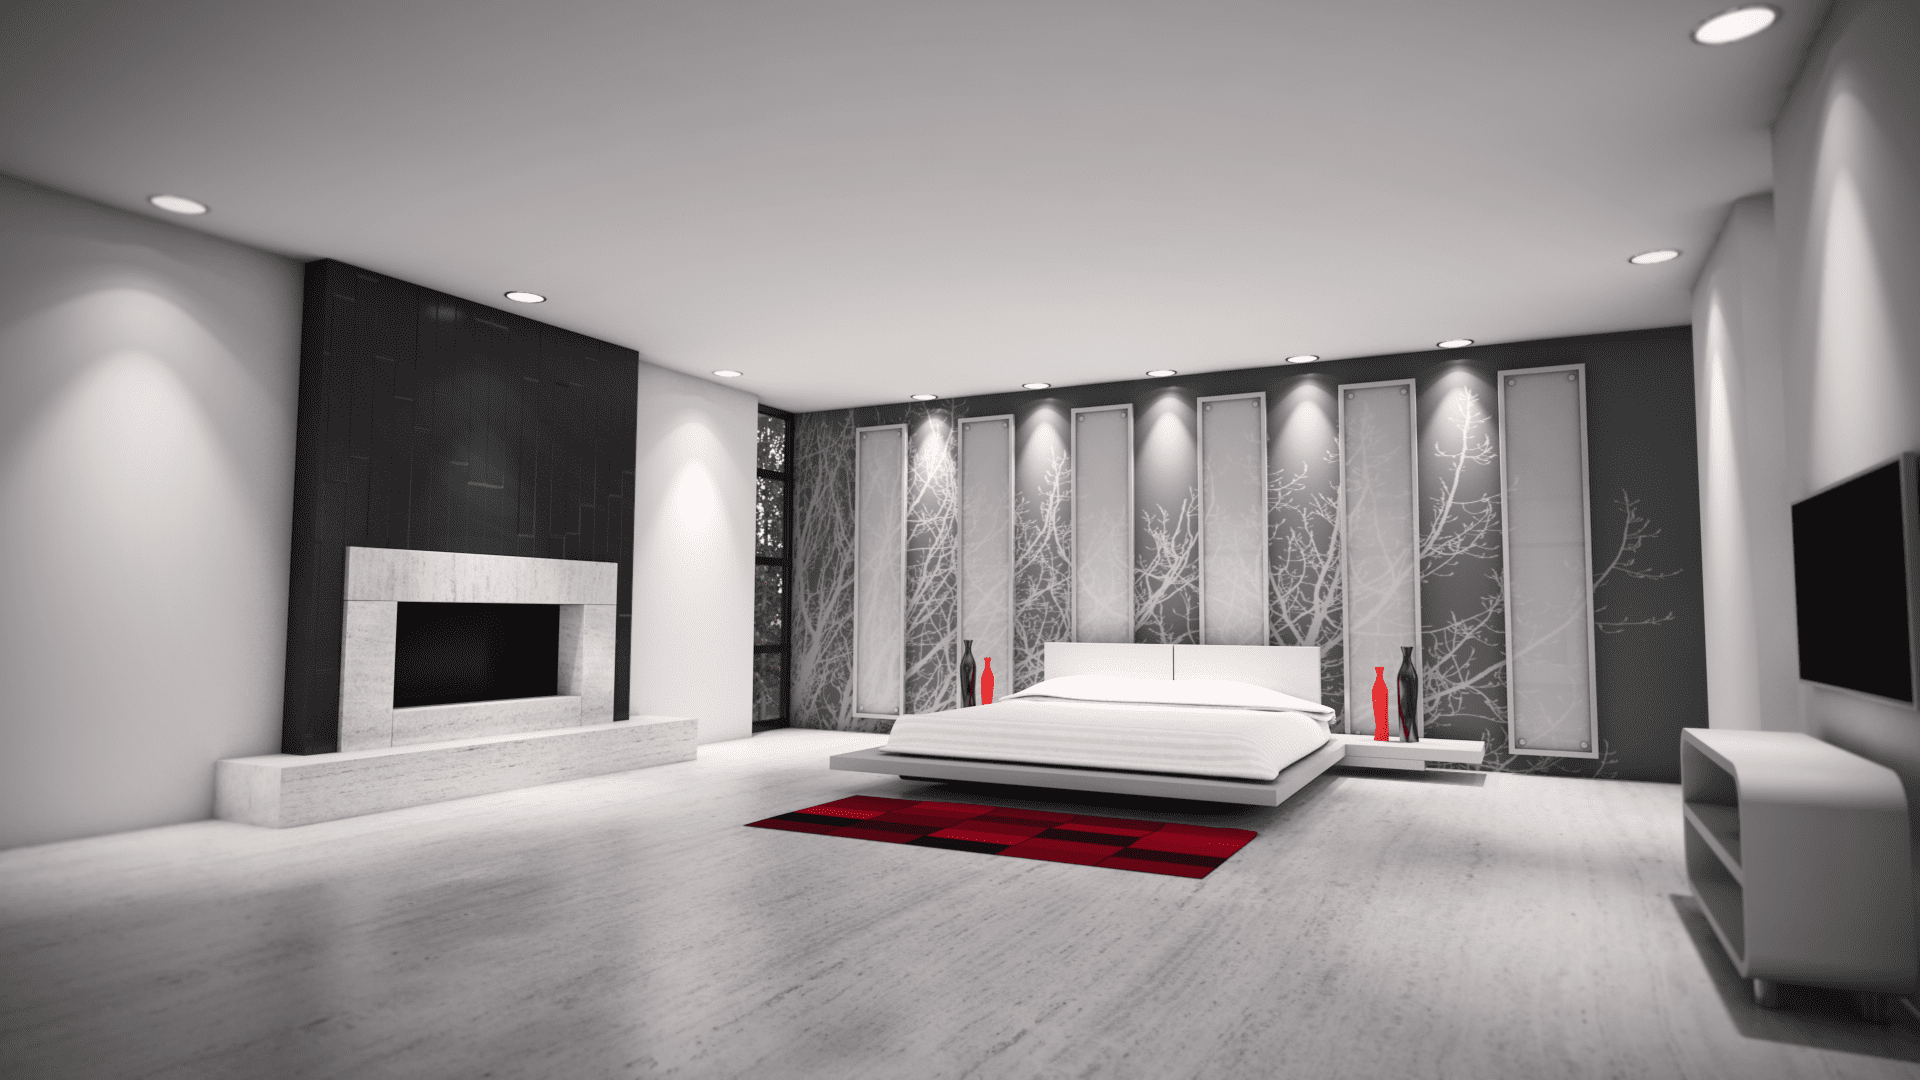 3d design bedroom render - 3d Design Bedroom